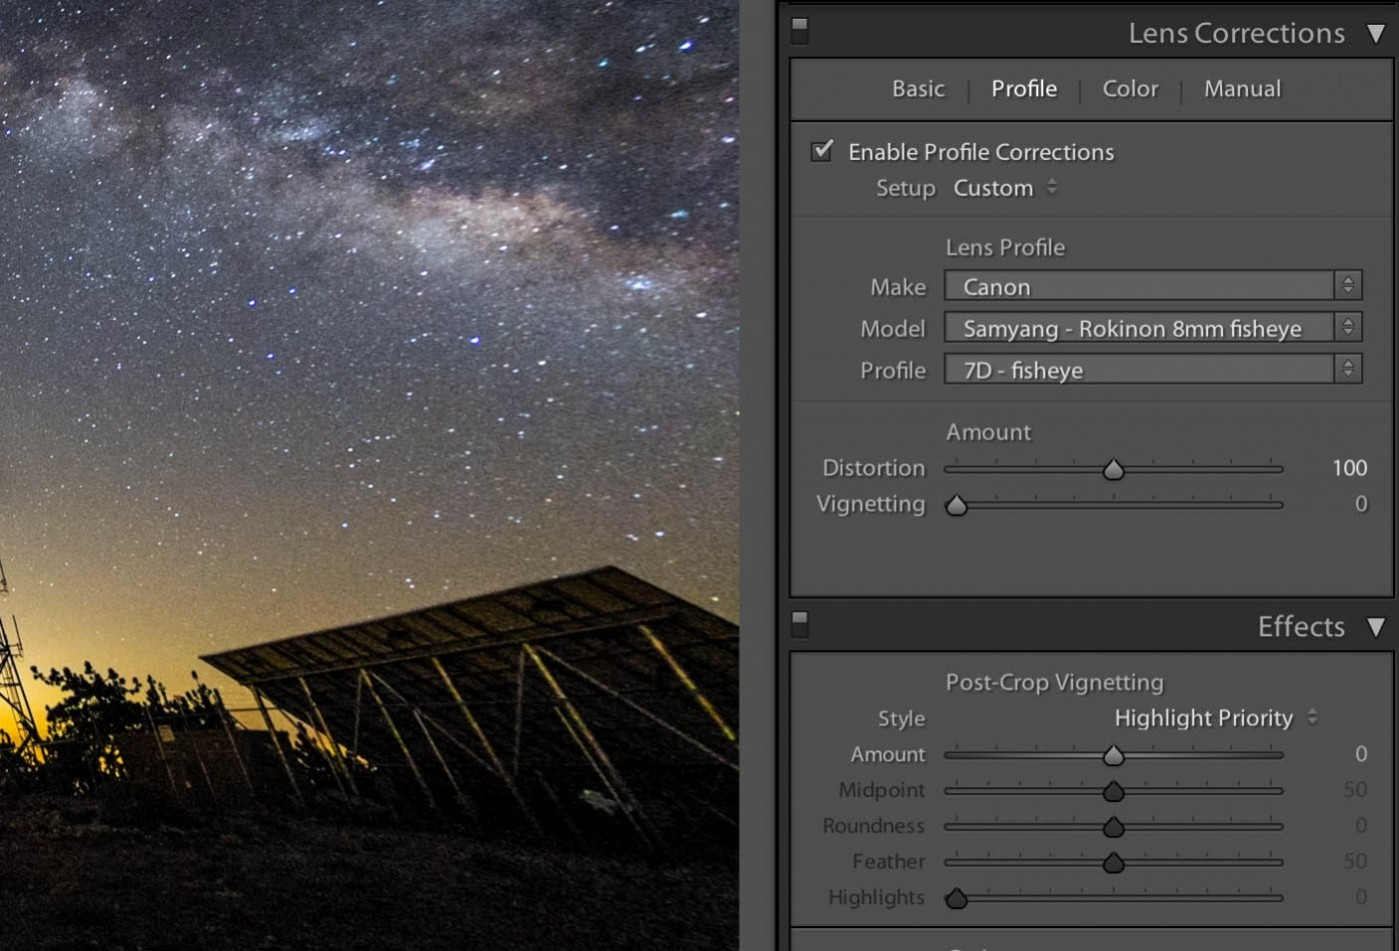 Adobe Lightroom has a built-in lens correction tool that can correct fisheye lenses after downloading the appropriate profile from the Adobe Lens Profile Downloader